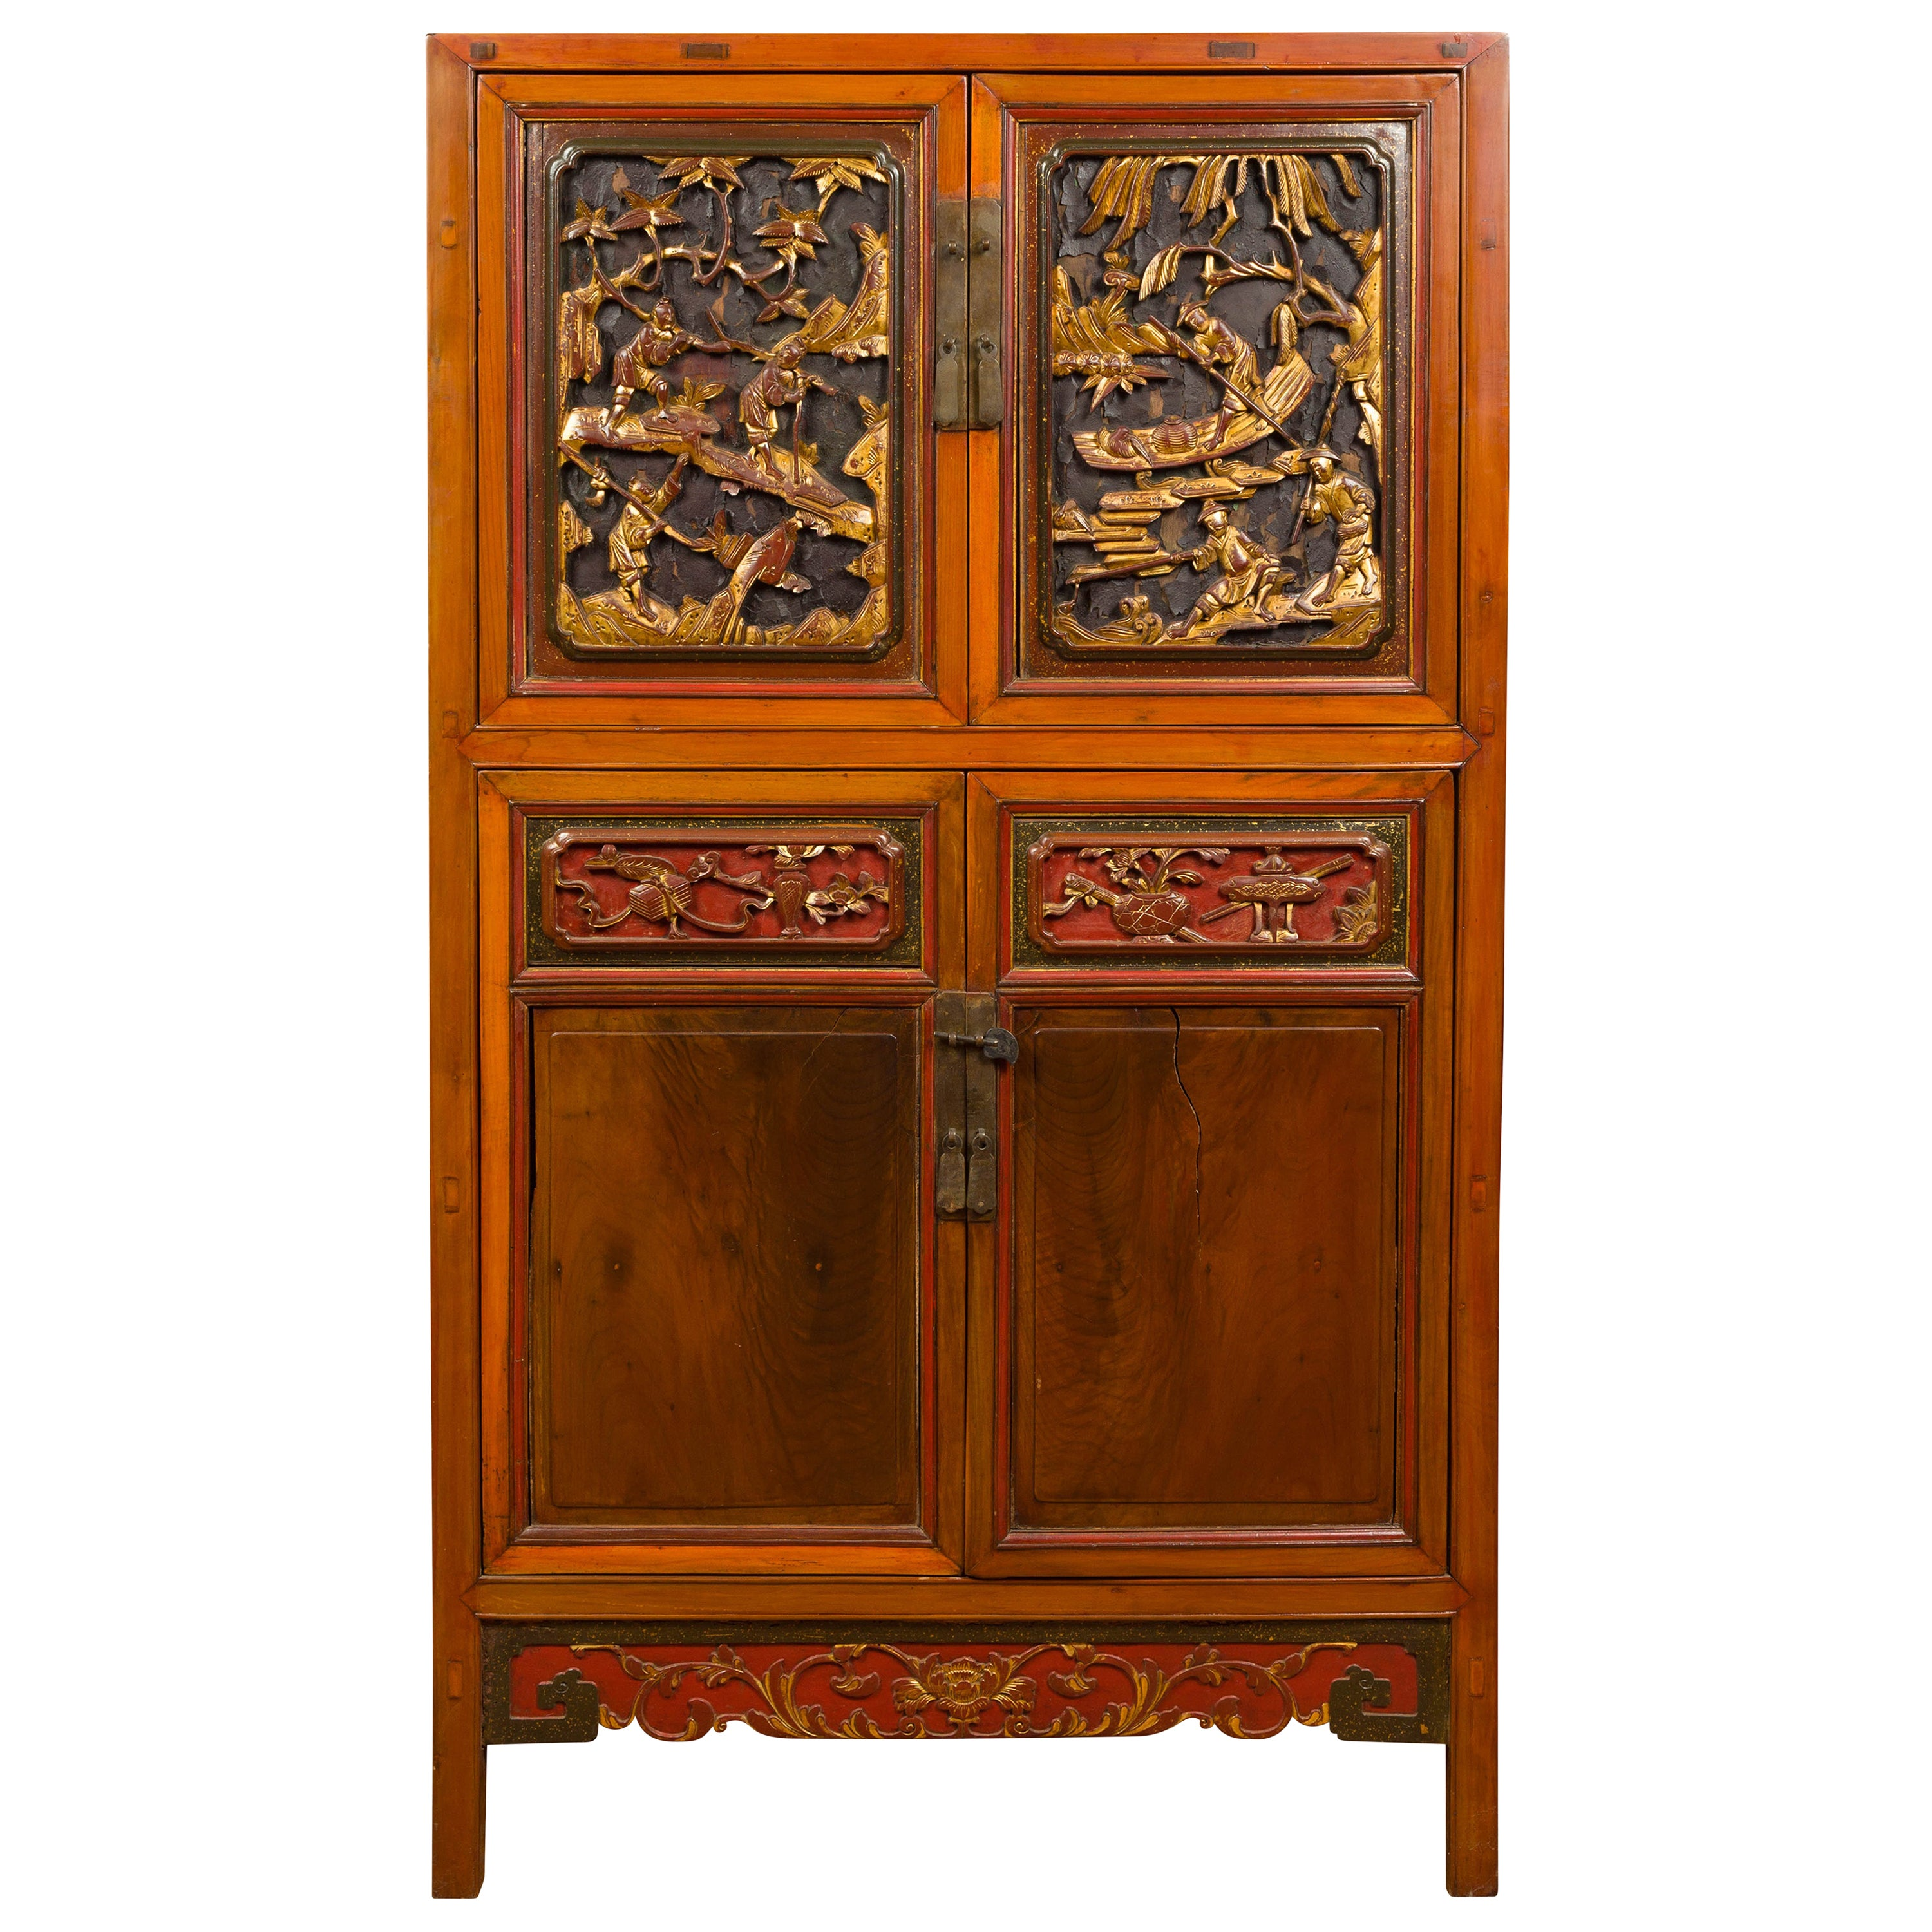 Chinese Ming Dynasty Style Cabinet with Doors, Drawers and Gilt Carved Motifs